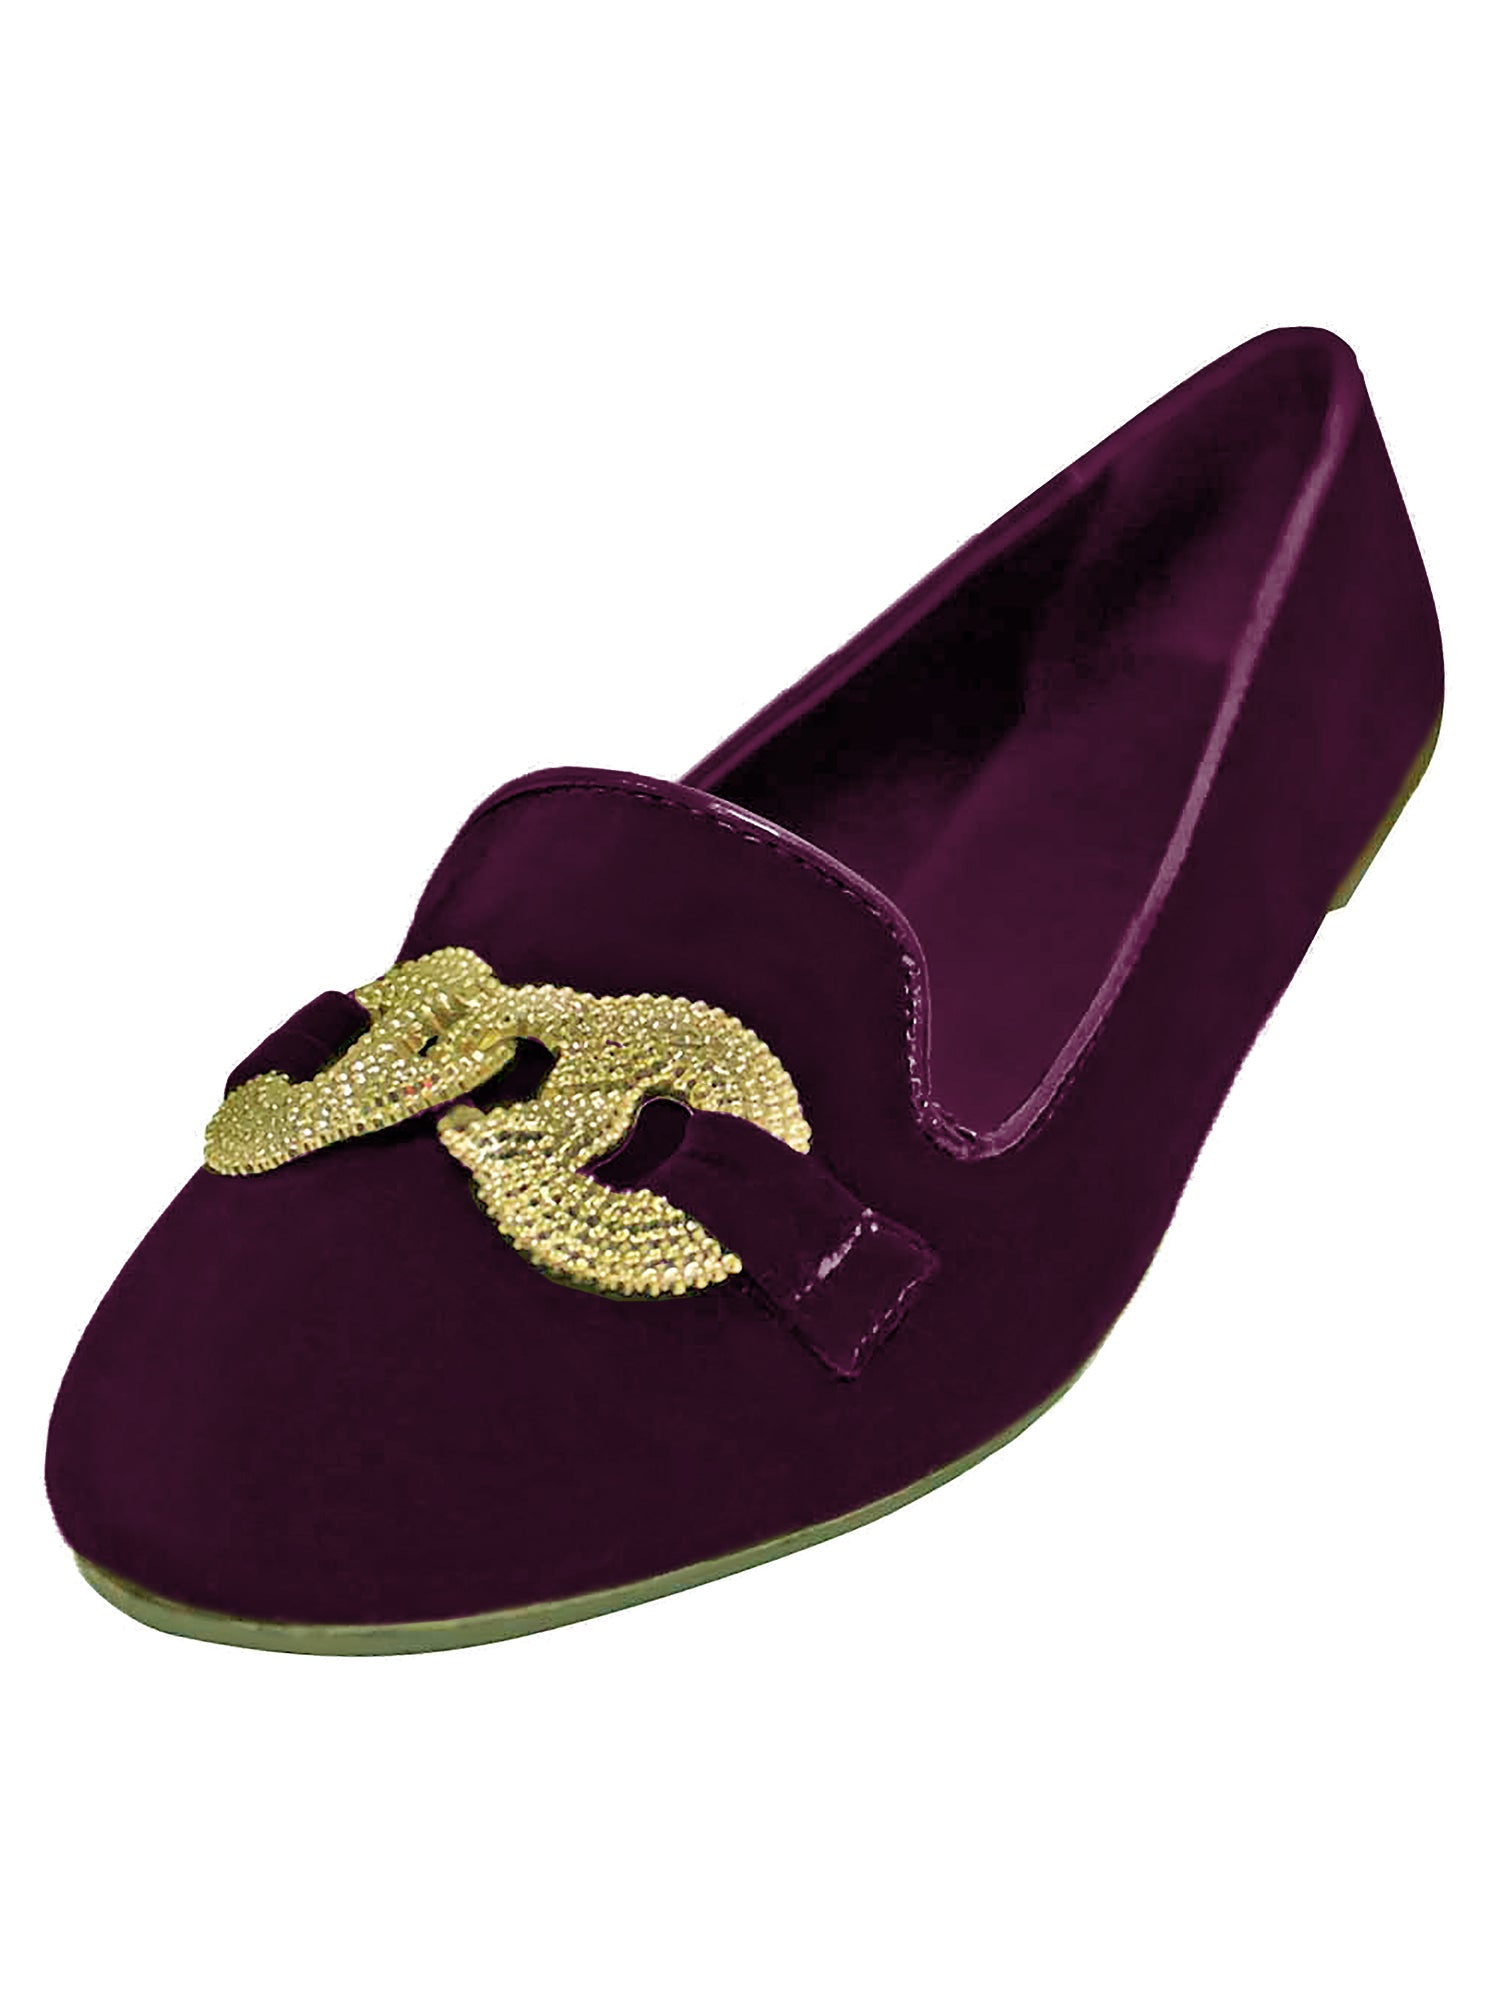 Suede Womens Ballet Flats With Silver Buckle